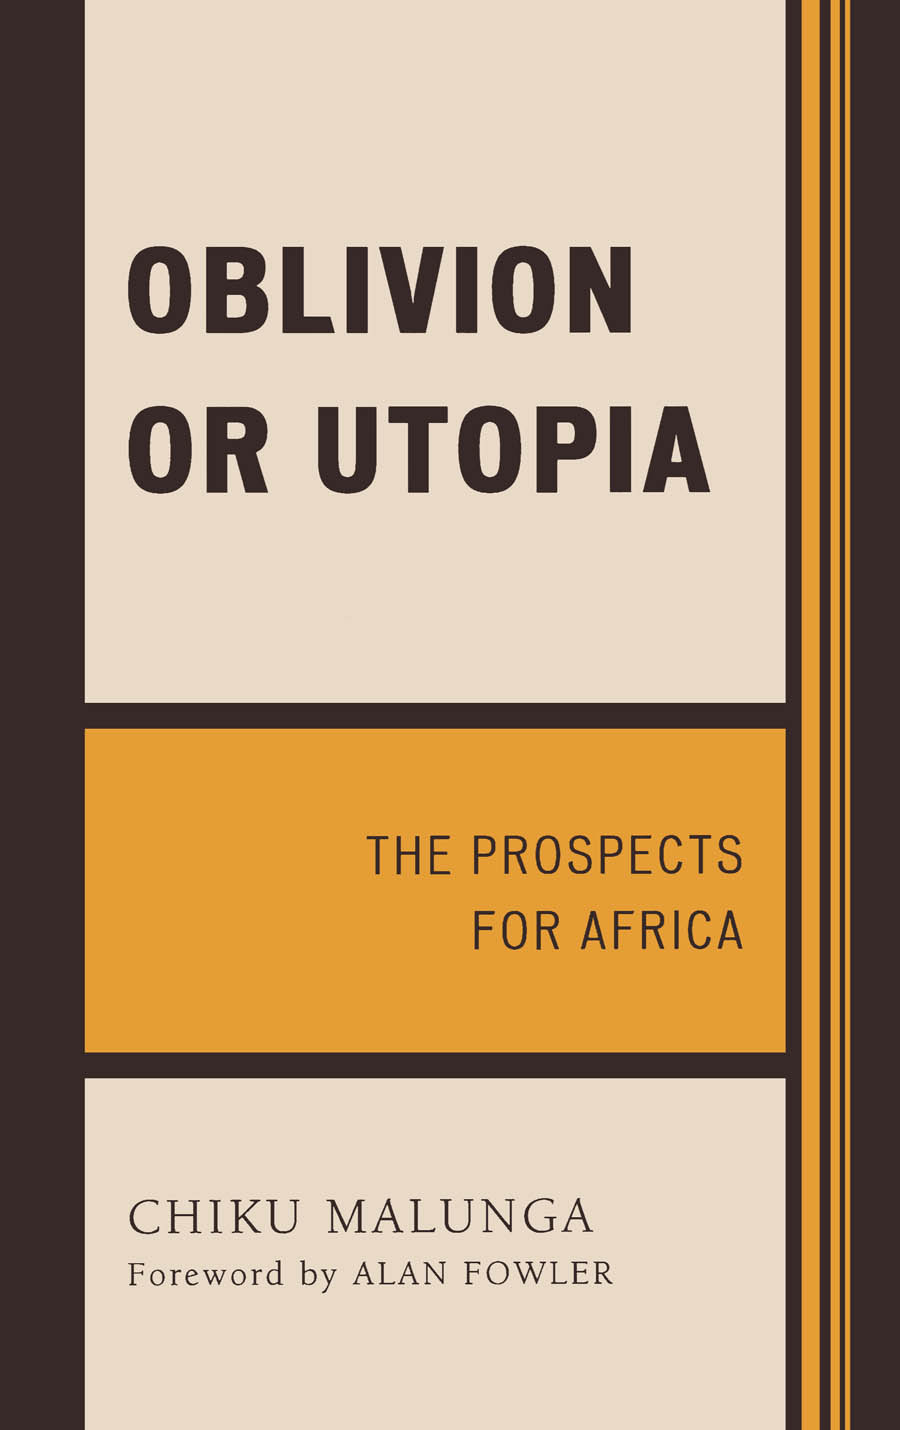 Oblivion or Utopia The Prospects for Africa